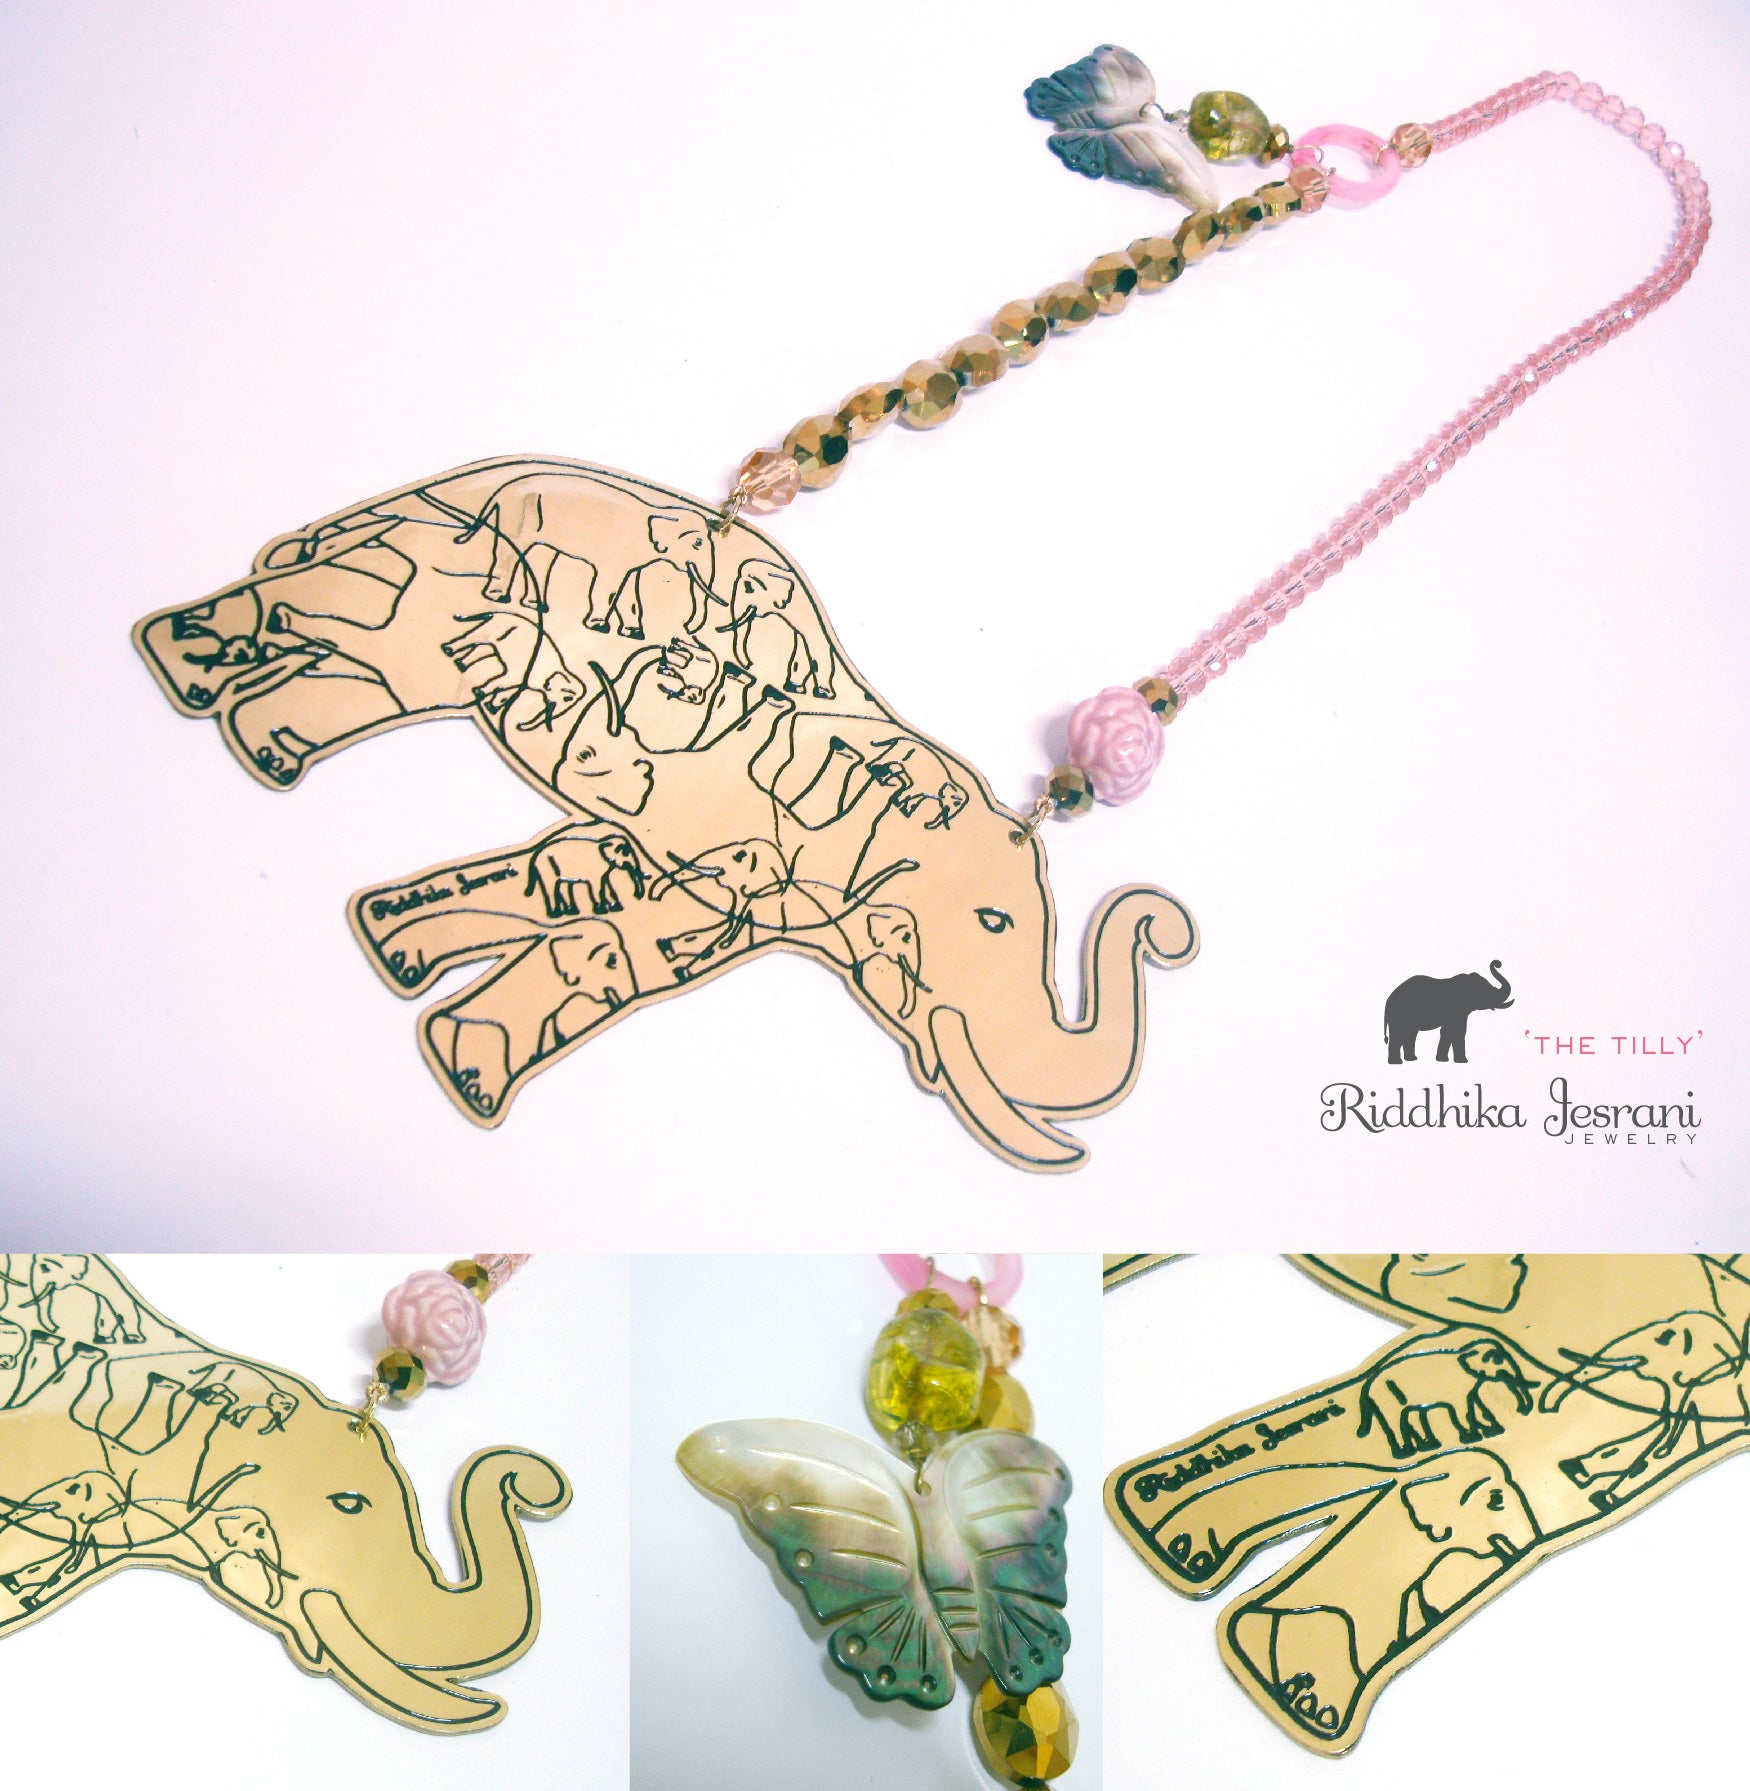 Animal Love 'The Tilly' Necklace - Riddhika Jesrani